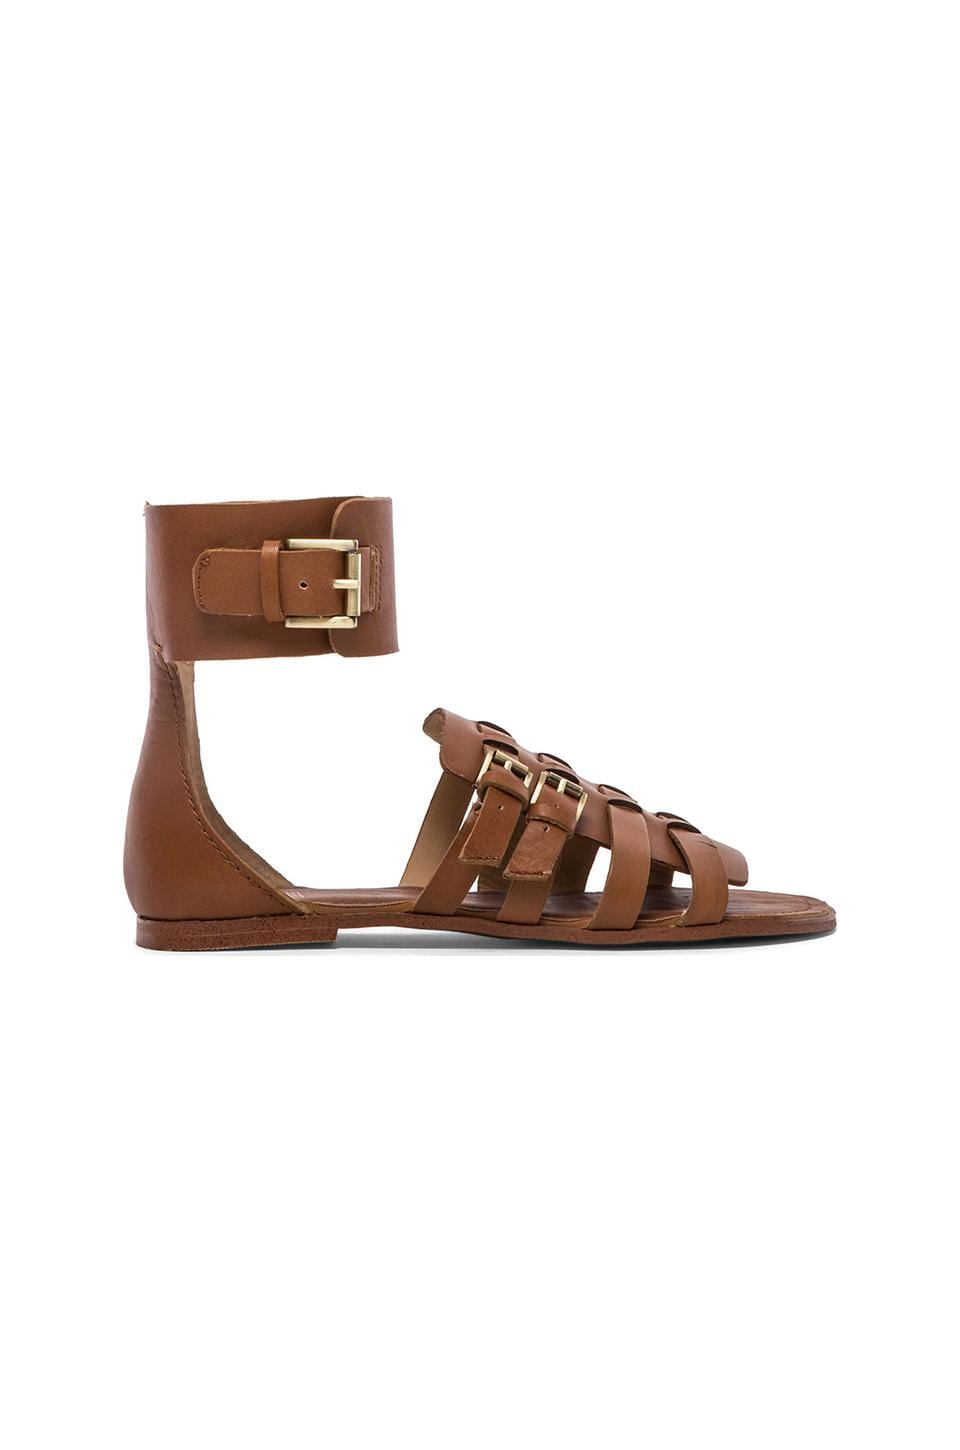 Joe's Jeans Marlin Sandal in Dark Tan